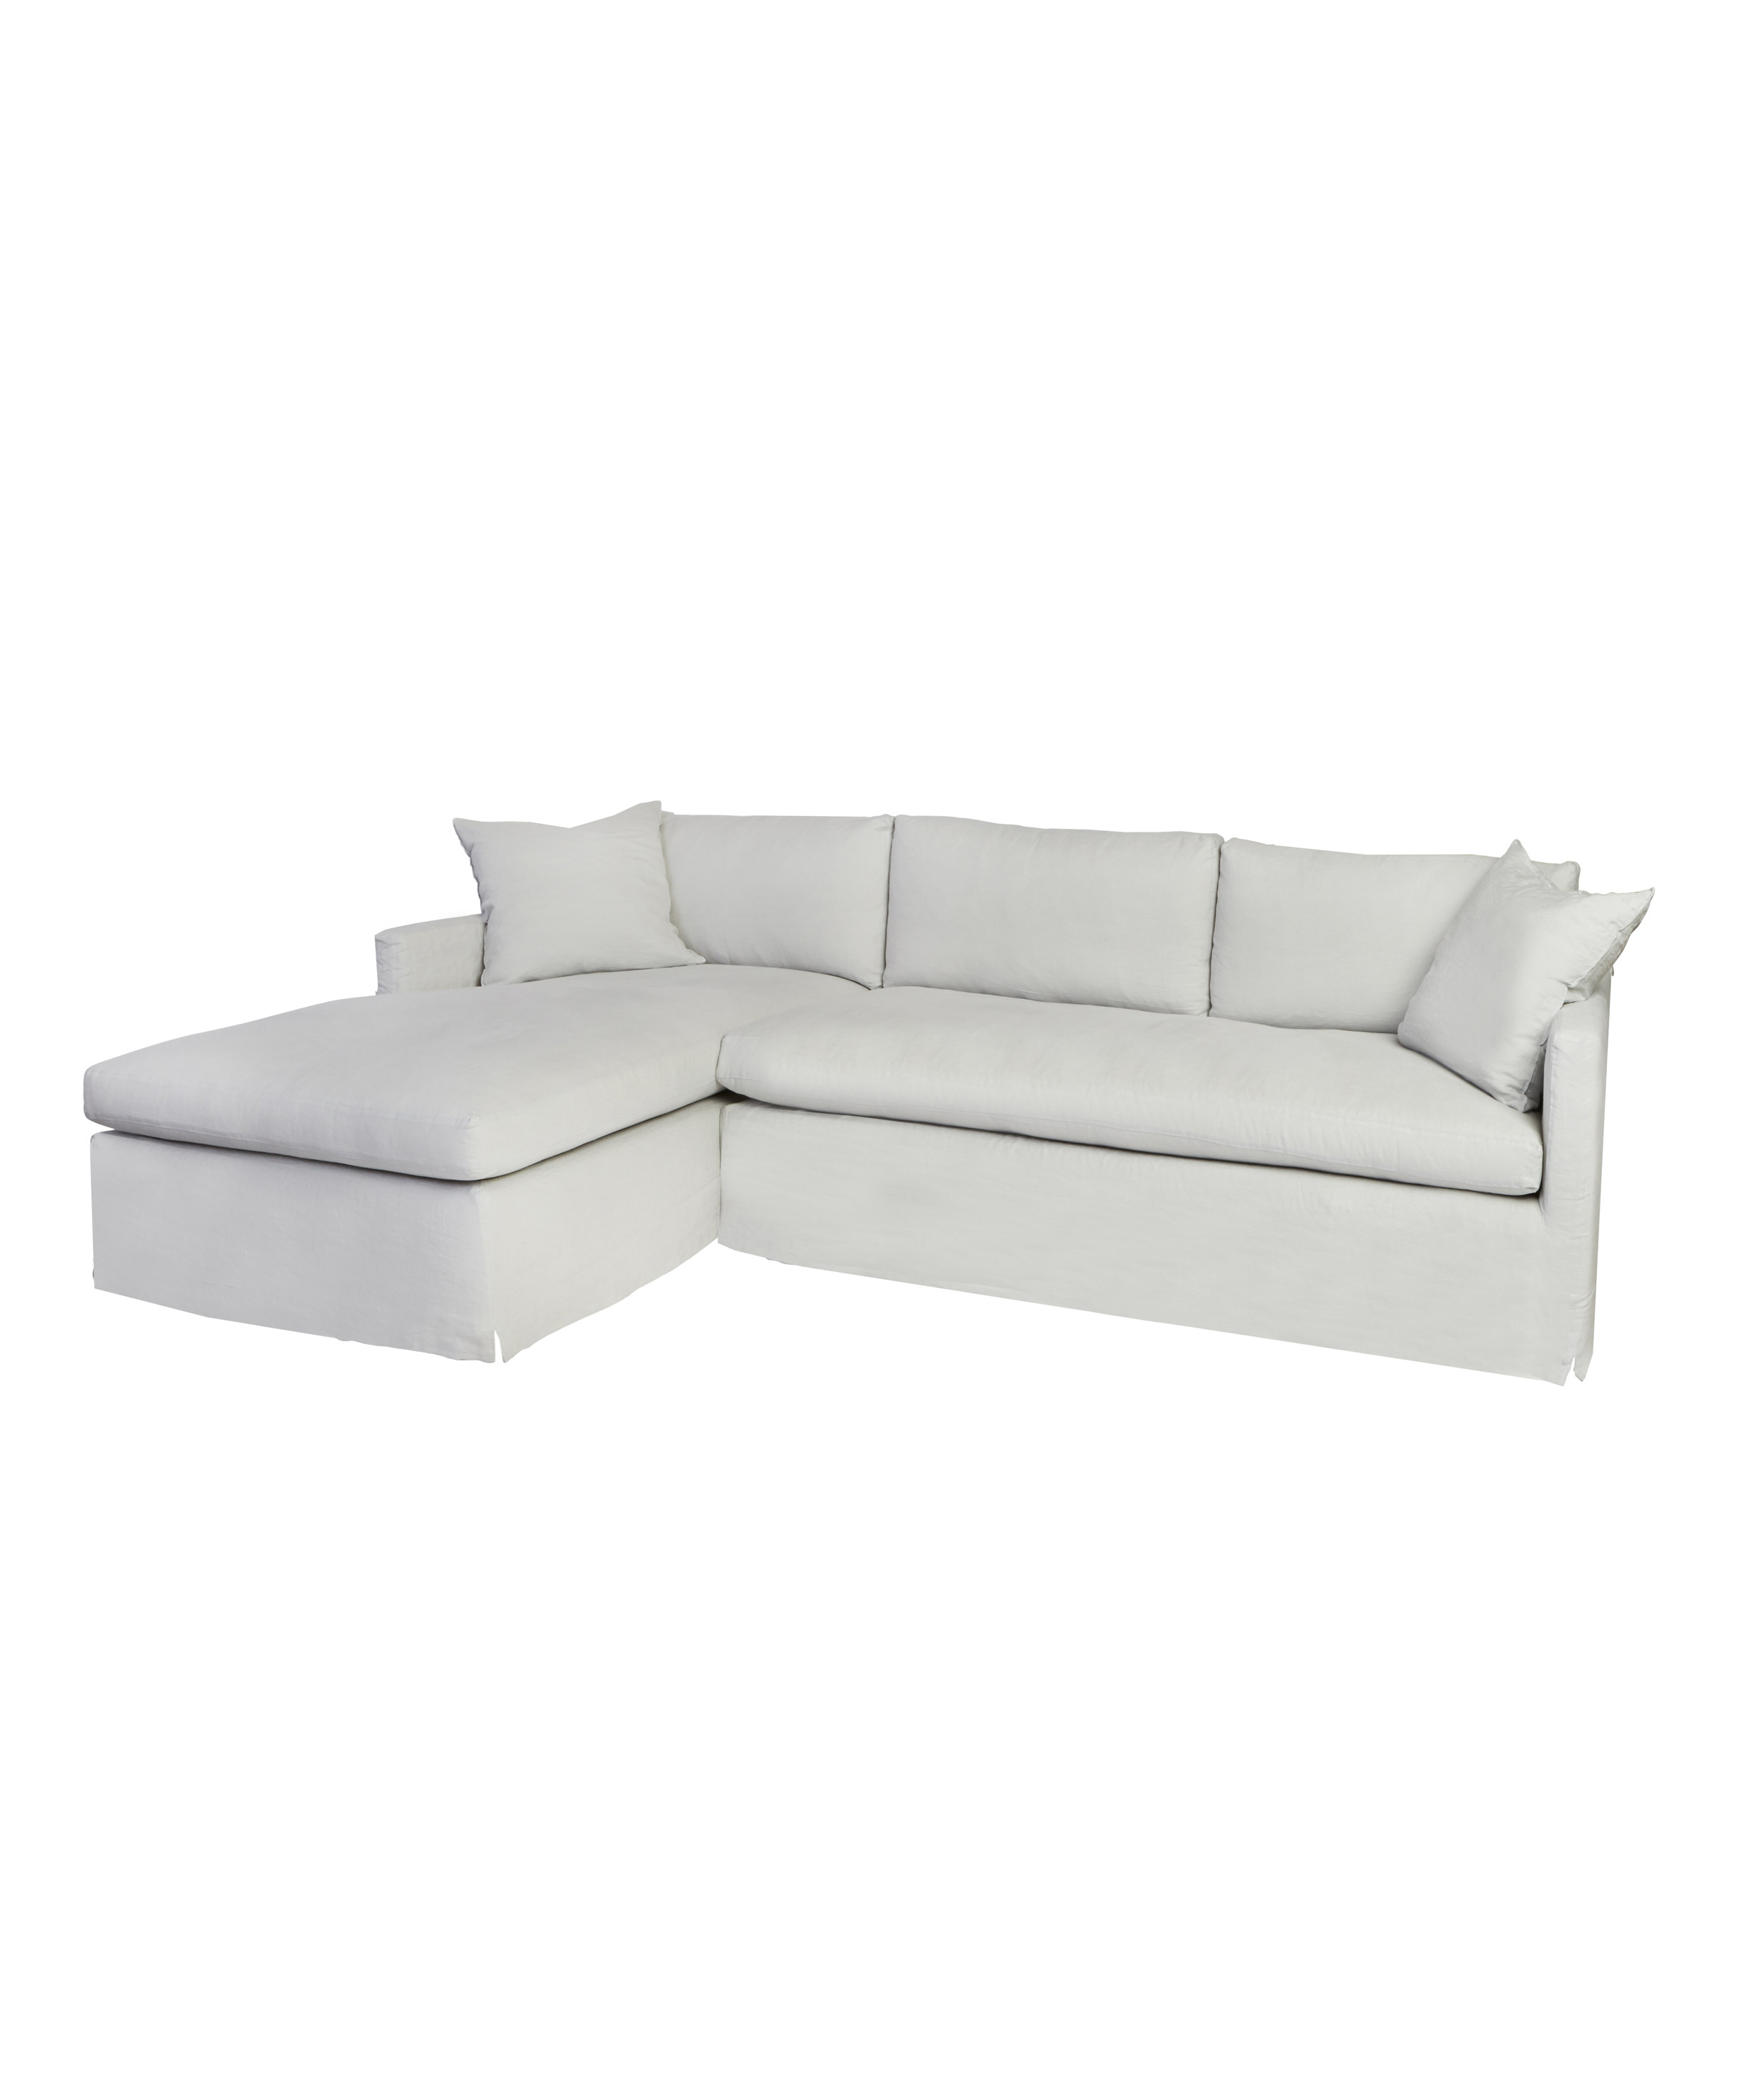 Kurtz Collection With Josephine 2 Piece Sectionals With Laf Sofa (View 19 of 20)